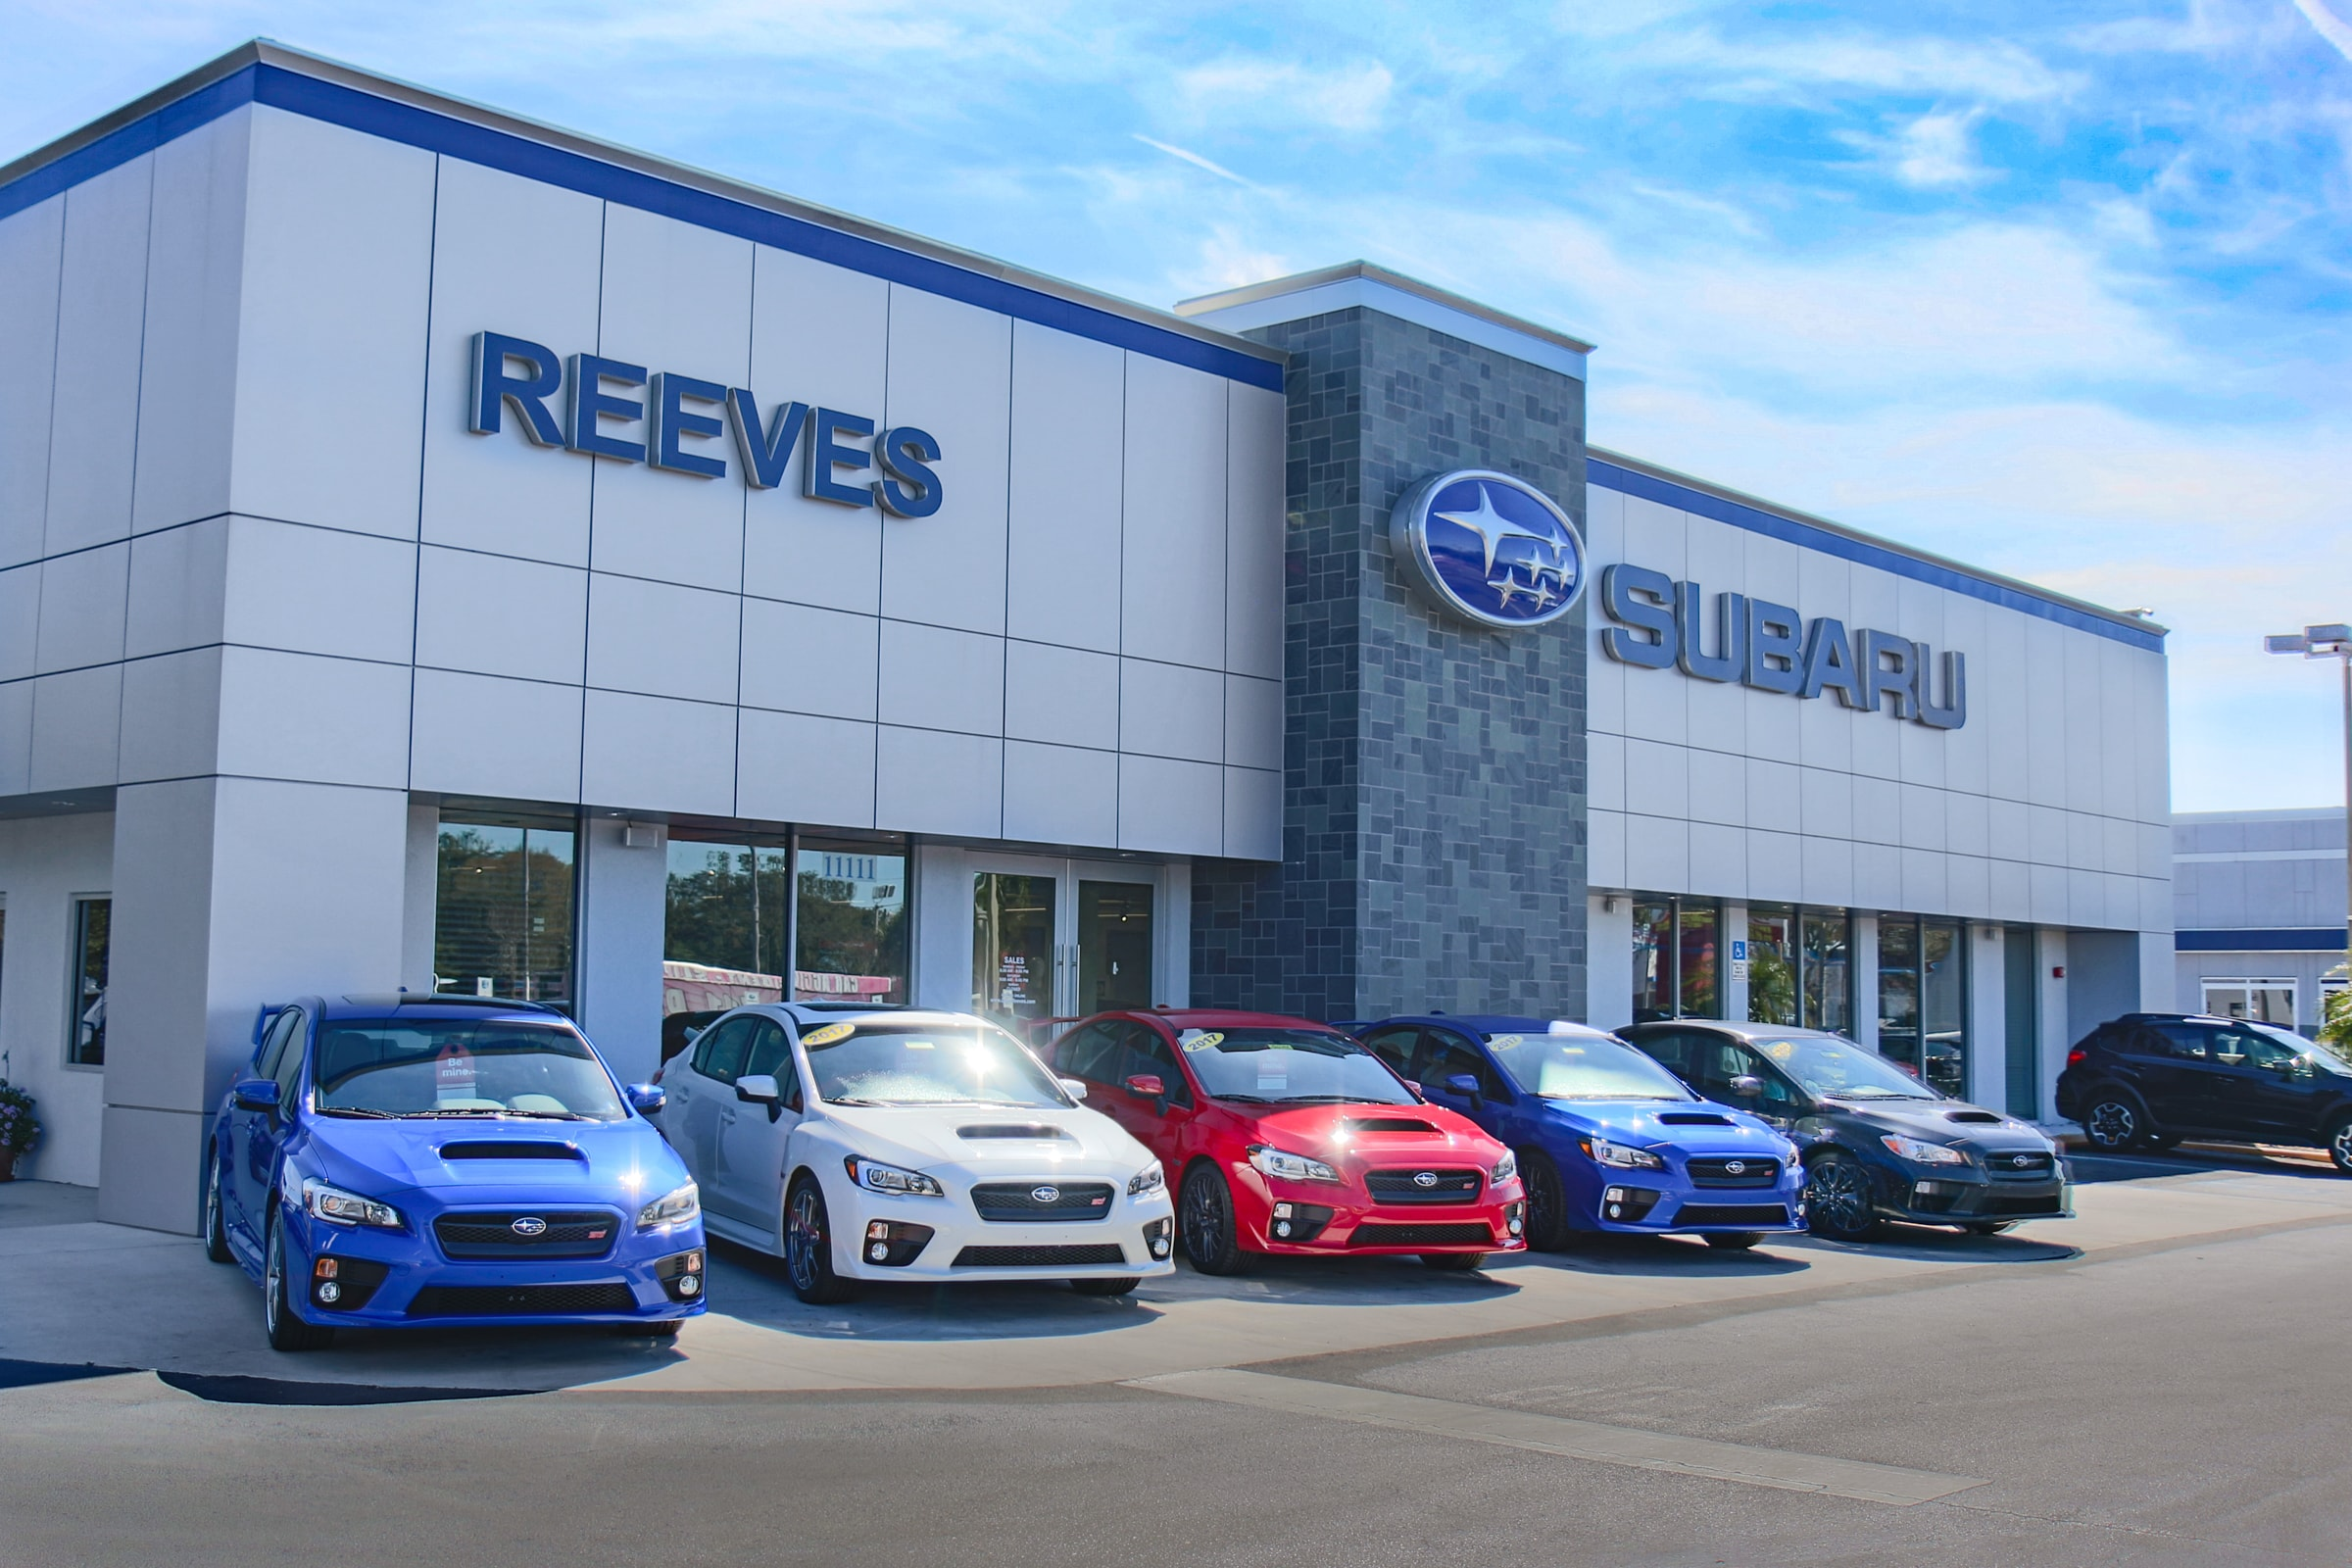 Reeves Subaru of Tampa